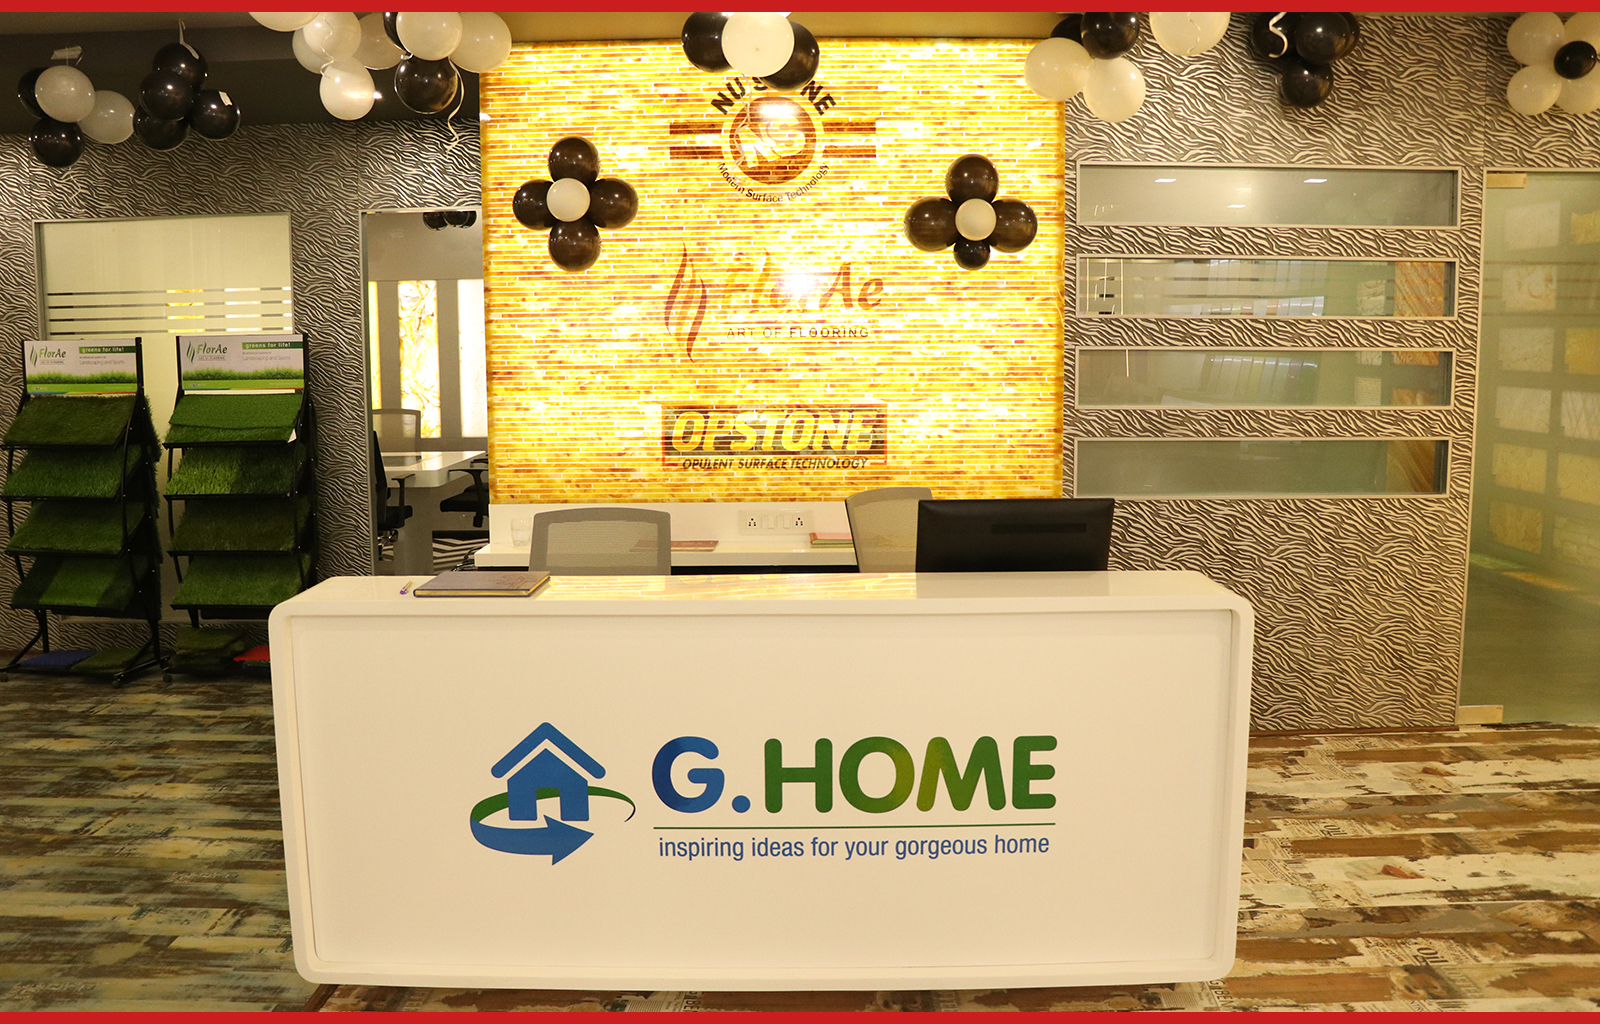 G home